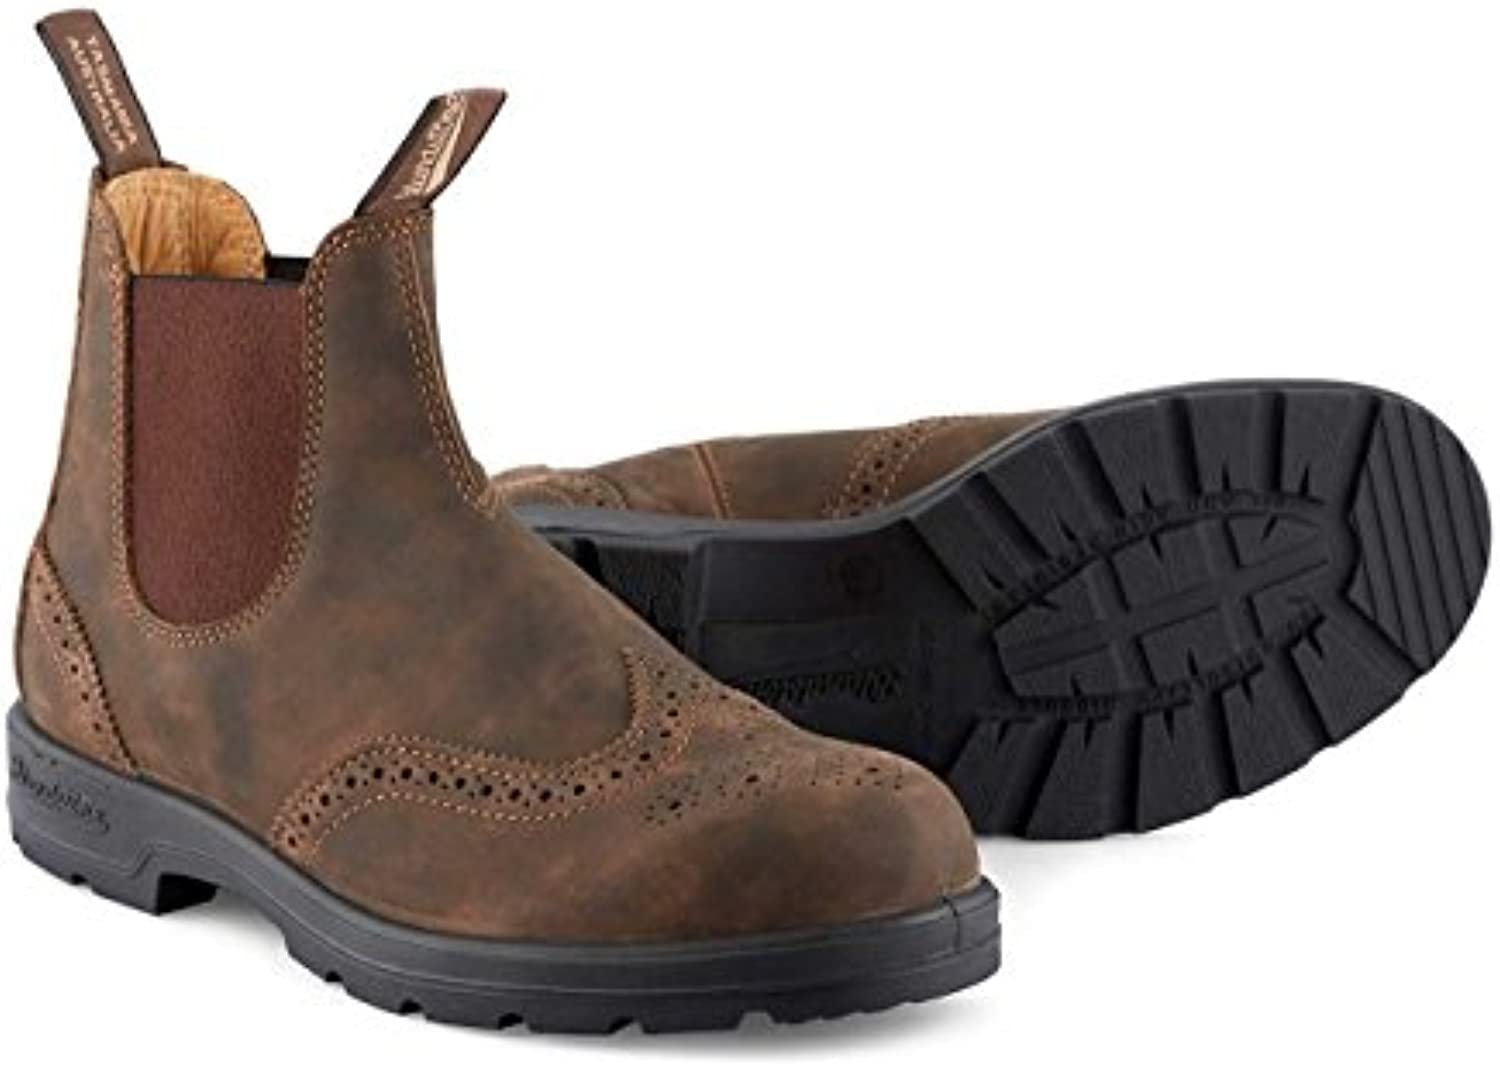 Blundstone 1471 Rustic Marronee PU Leather Brogue Chelsea Chelsea Chelsea stivali UK11 | Design professionale